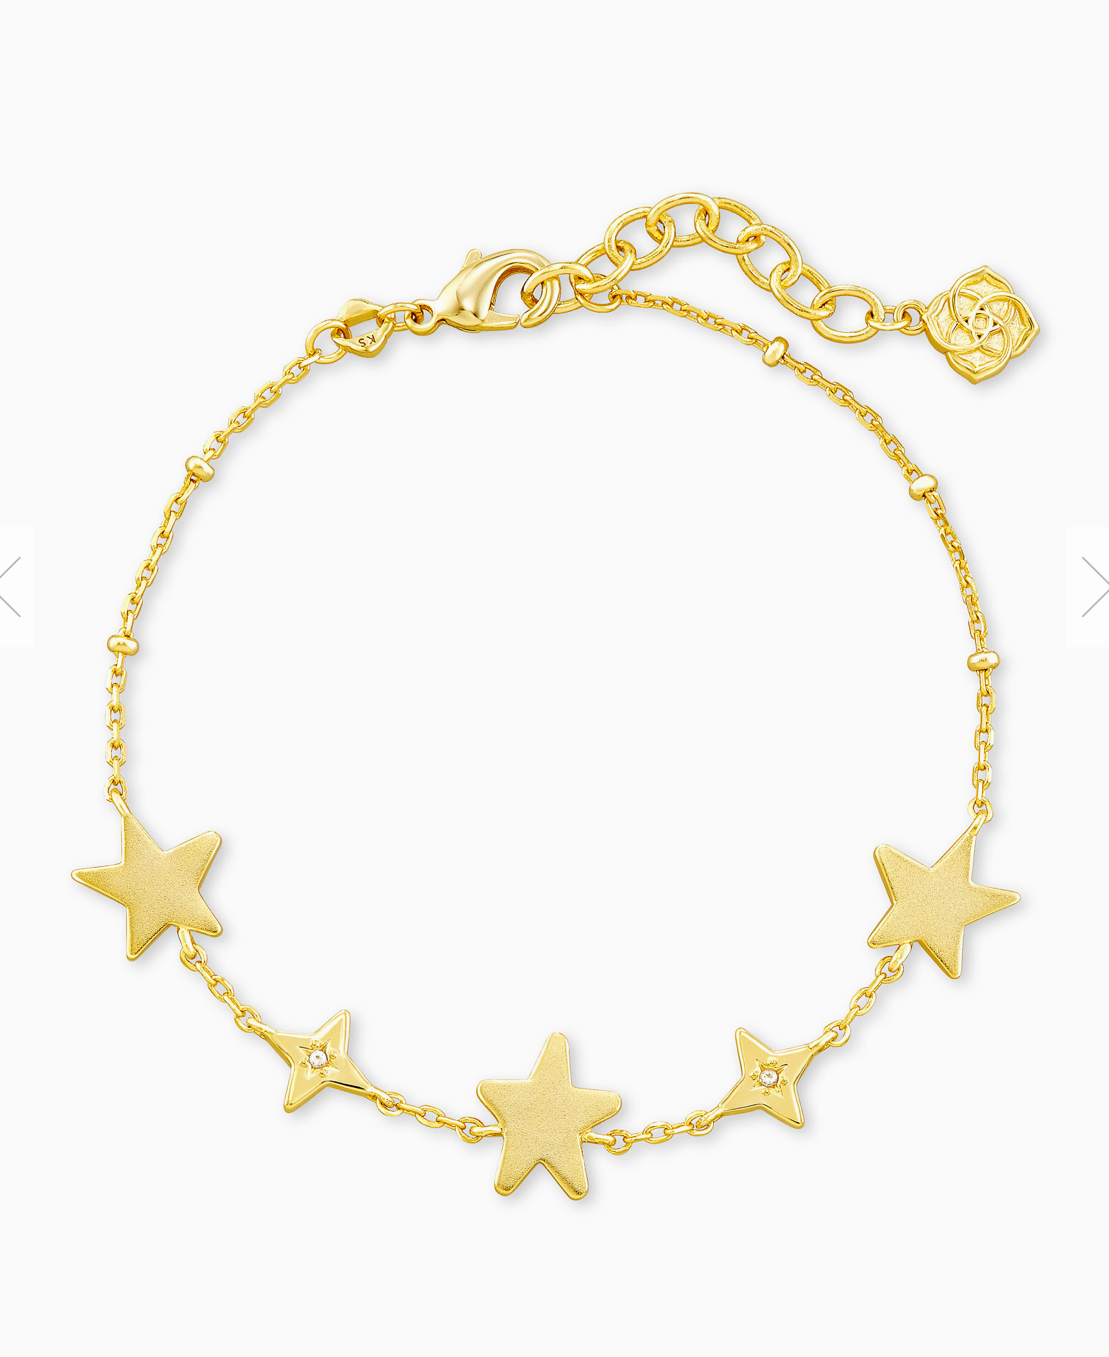 Jae Star Delicate Bracelet in Gold